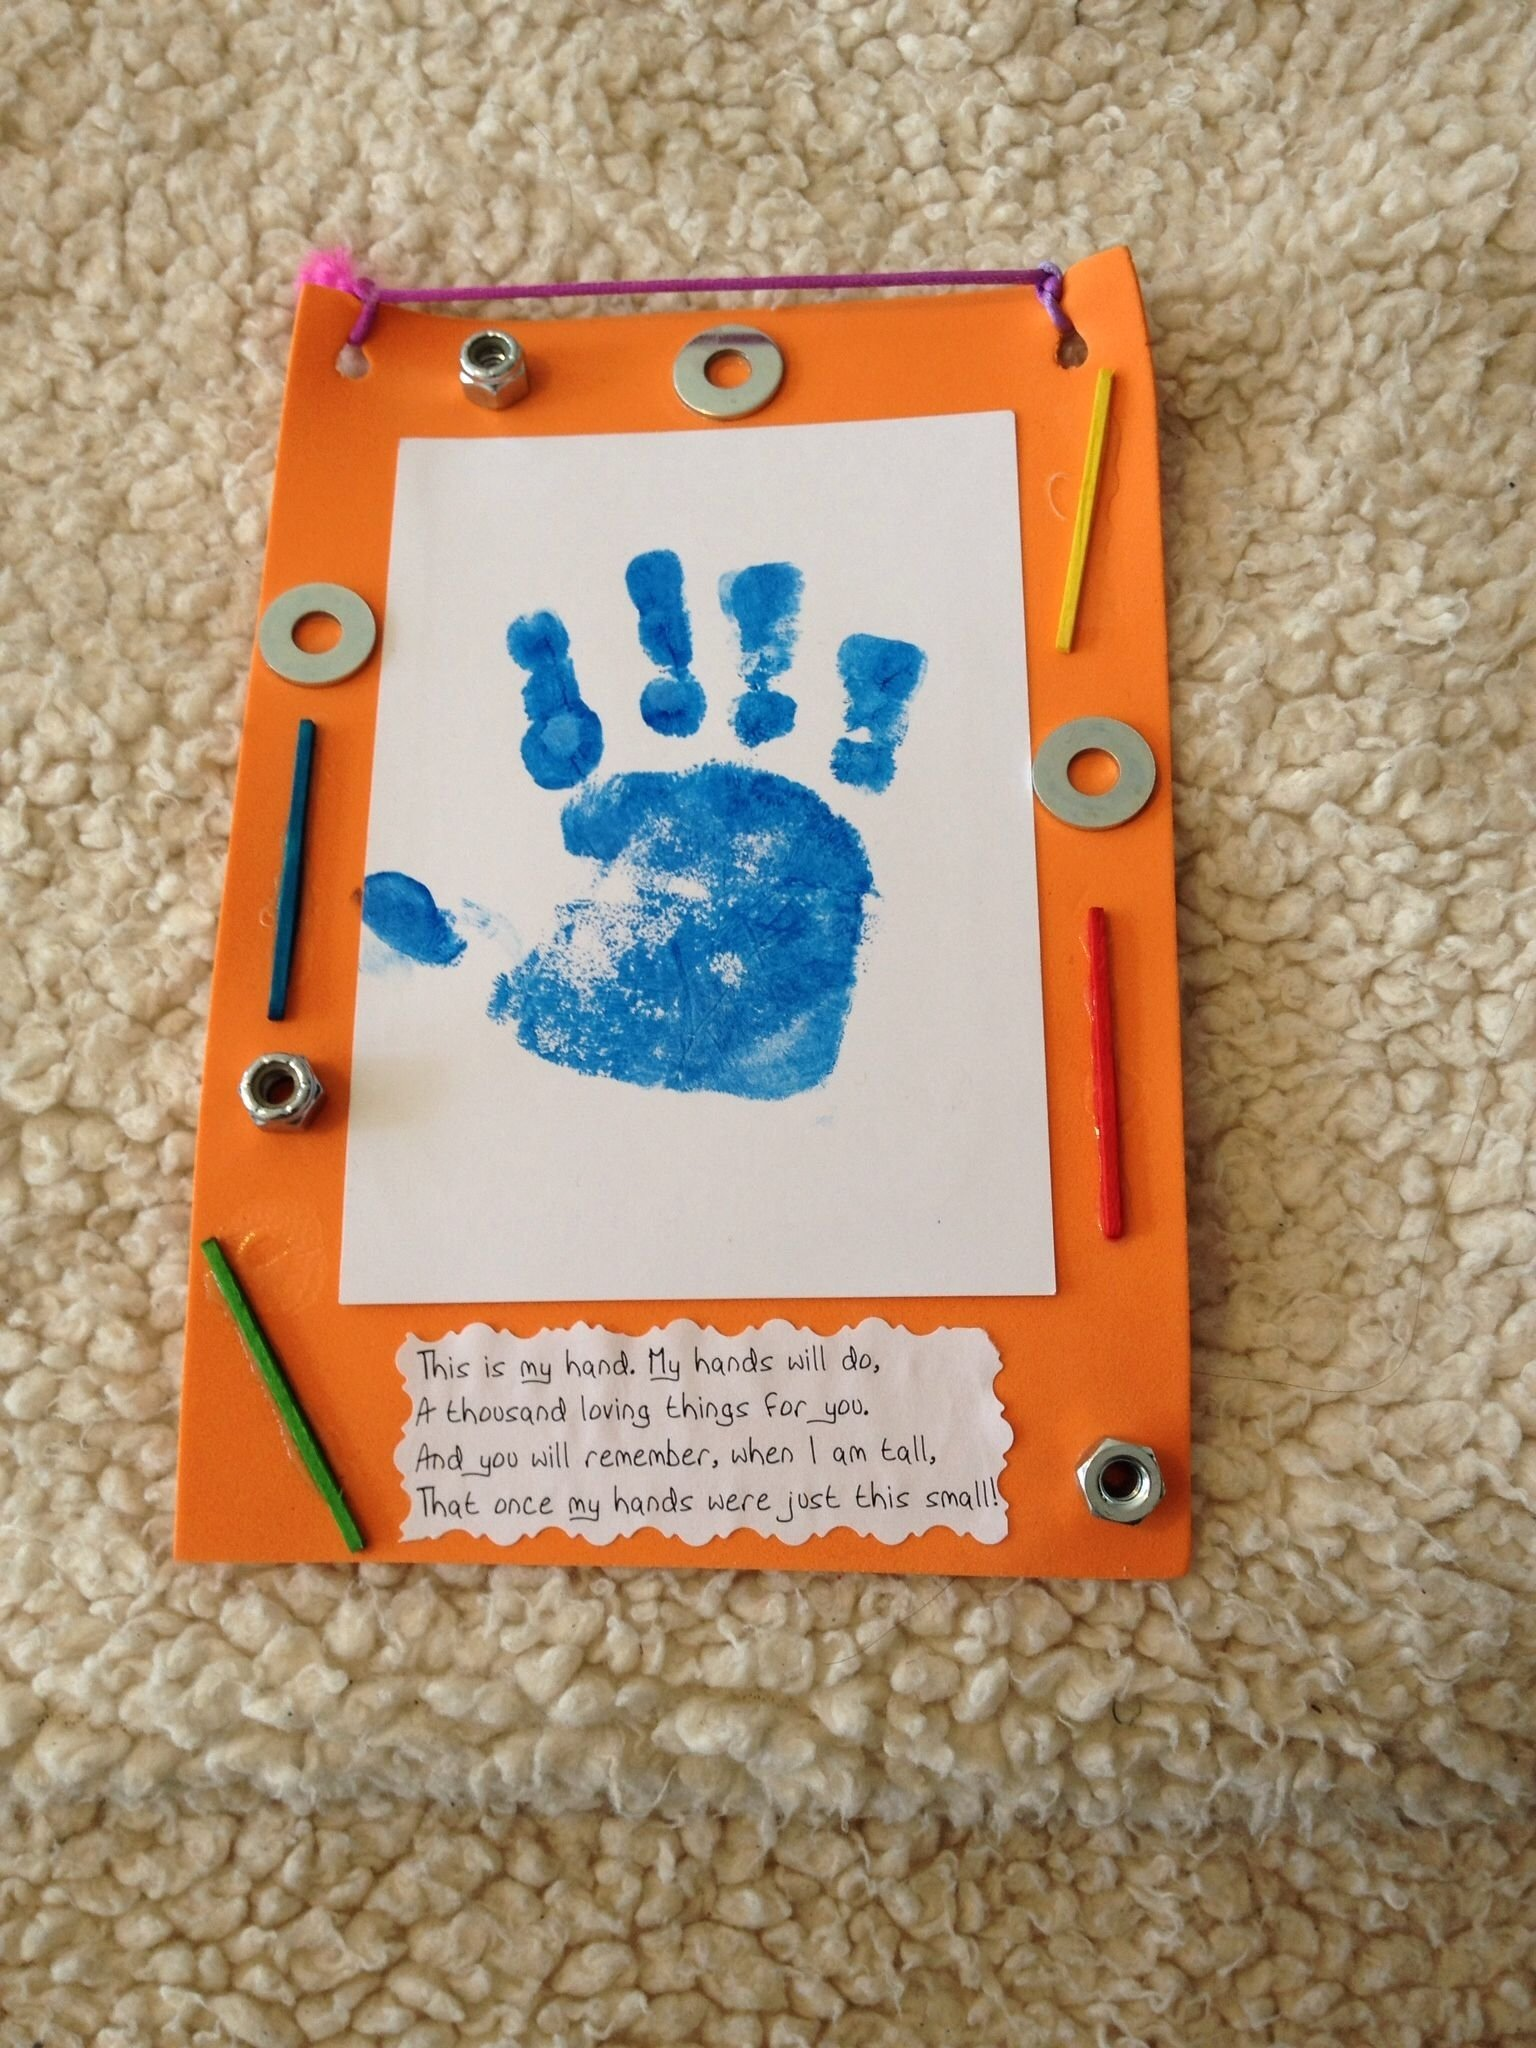 10 Elegant Fathers Day Ideas For Toddlers fathers day toddler craft made with a foam frame painted handprint